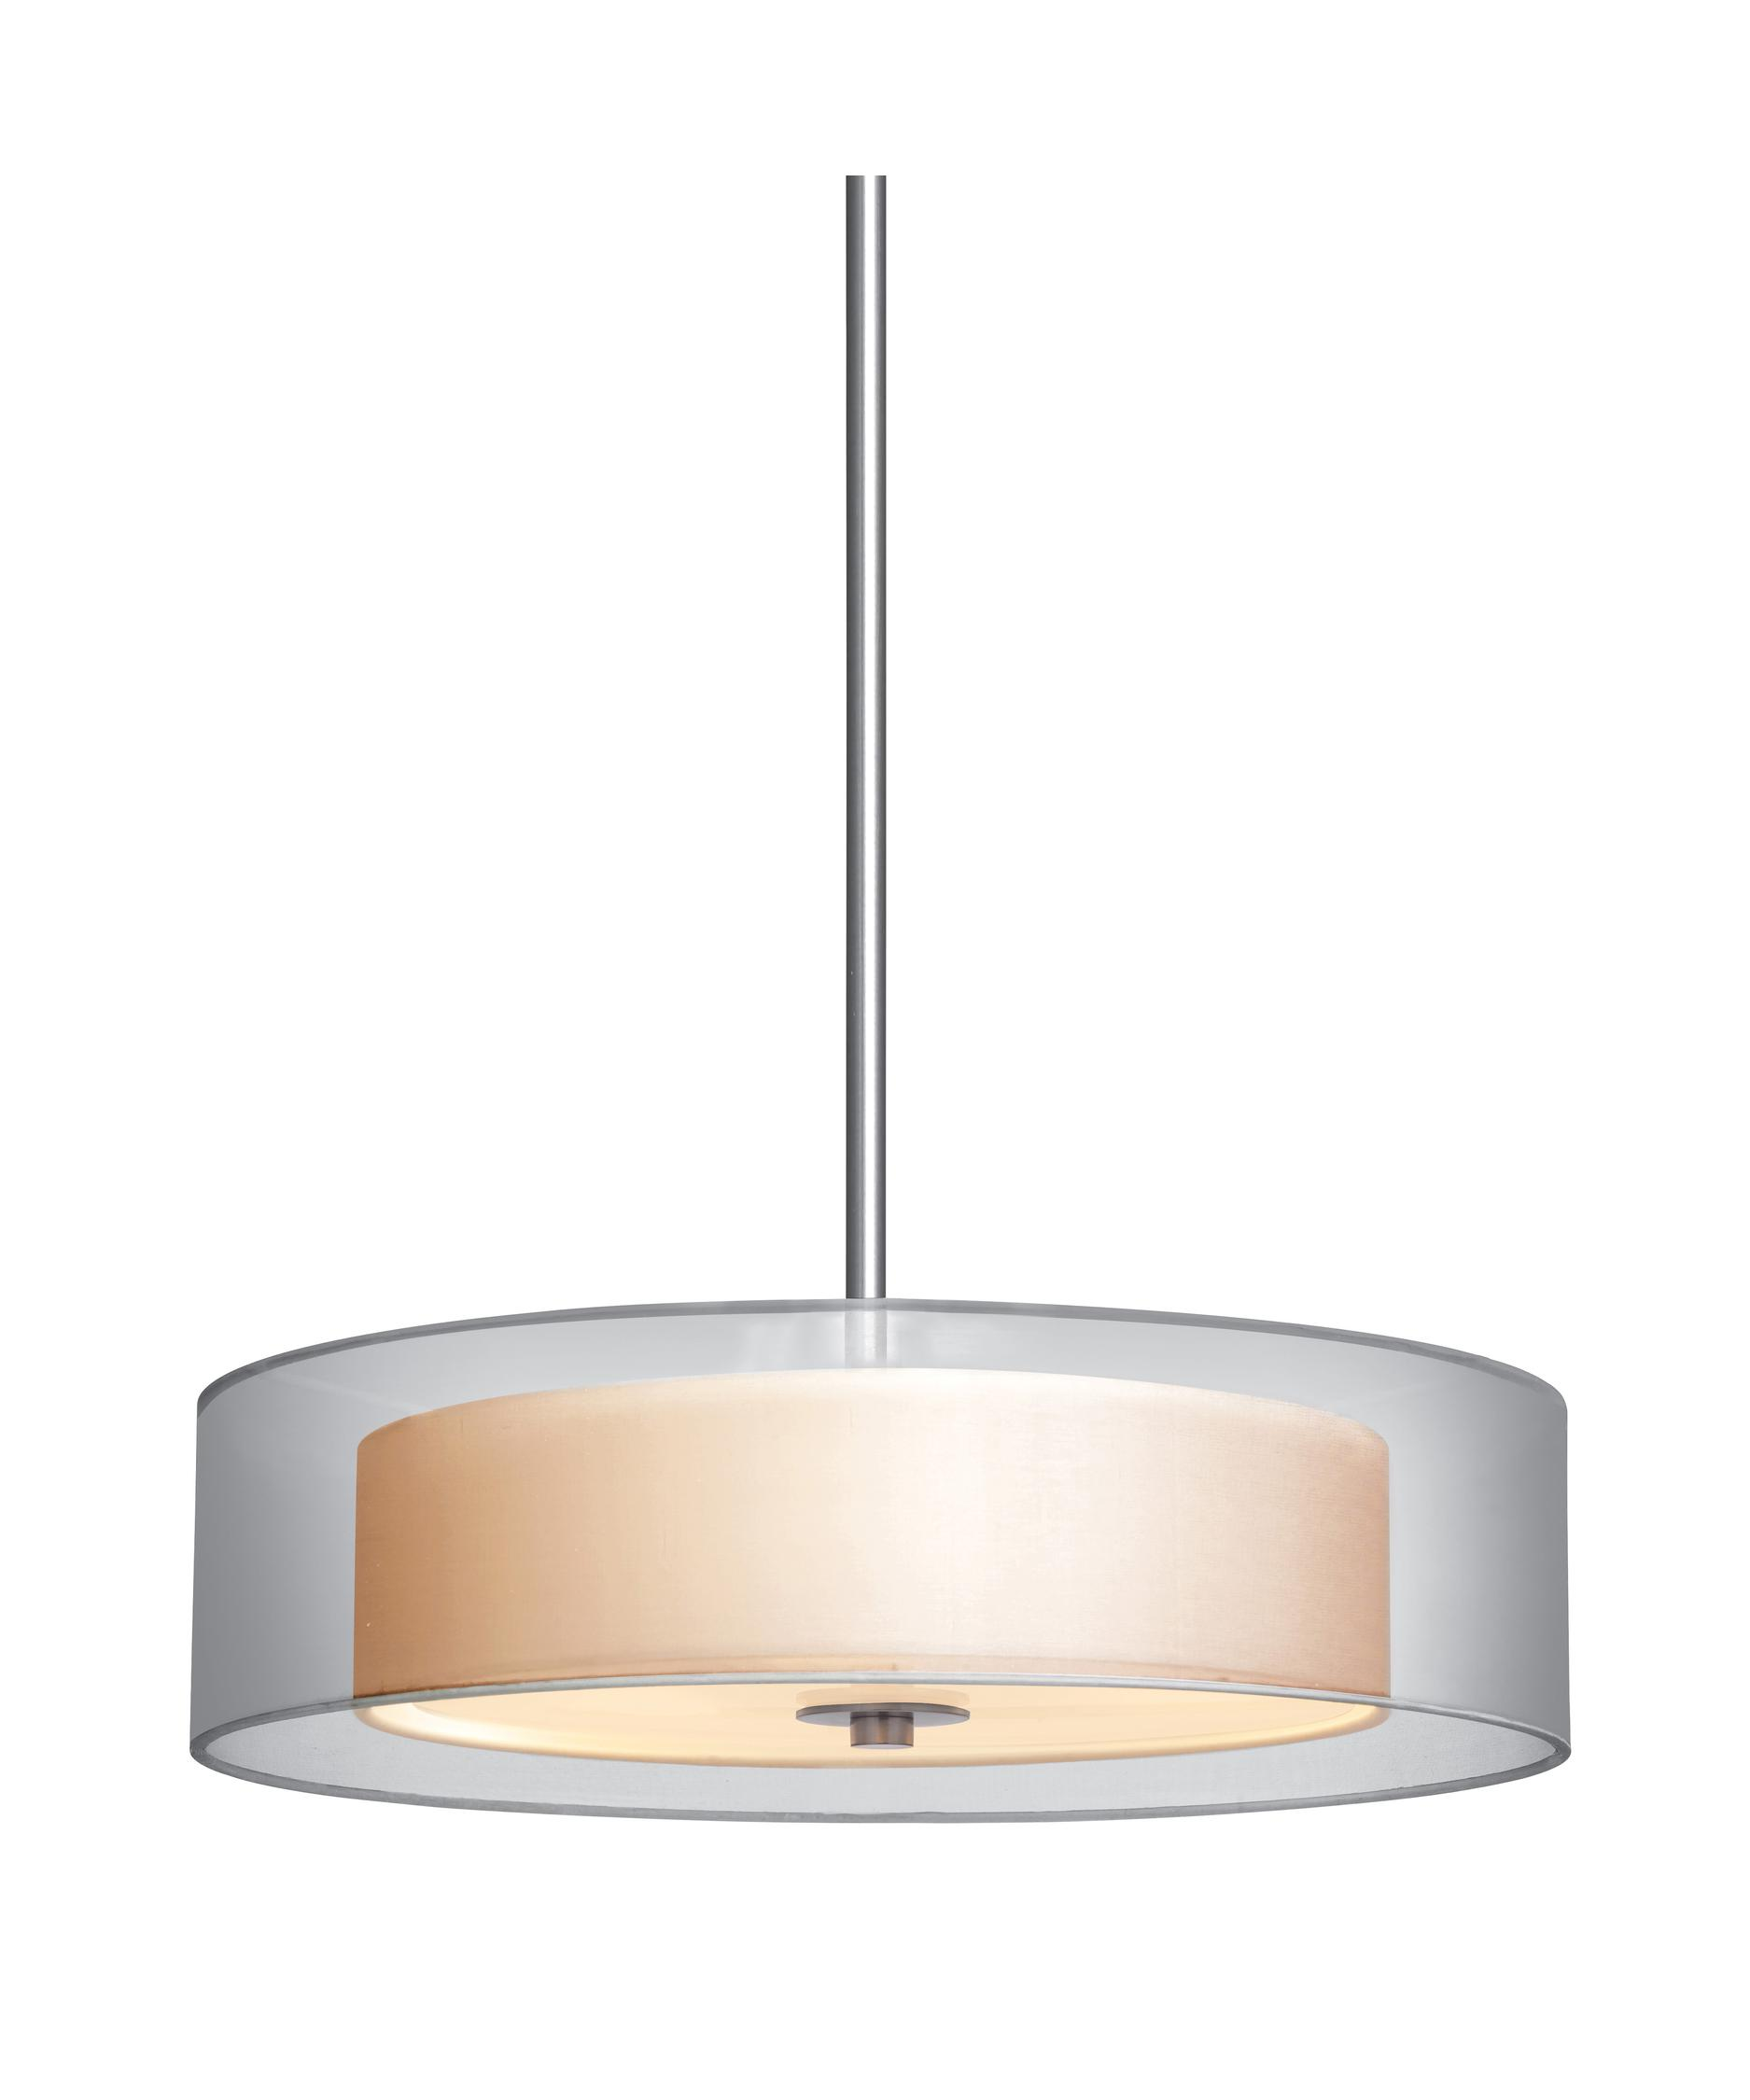 sonneman  puri  inch wide  light large pendant  capitol  - shown in satin nickel finish and silver organza shade